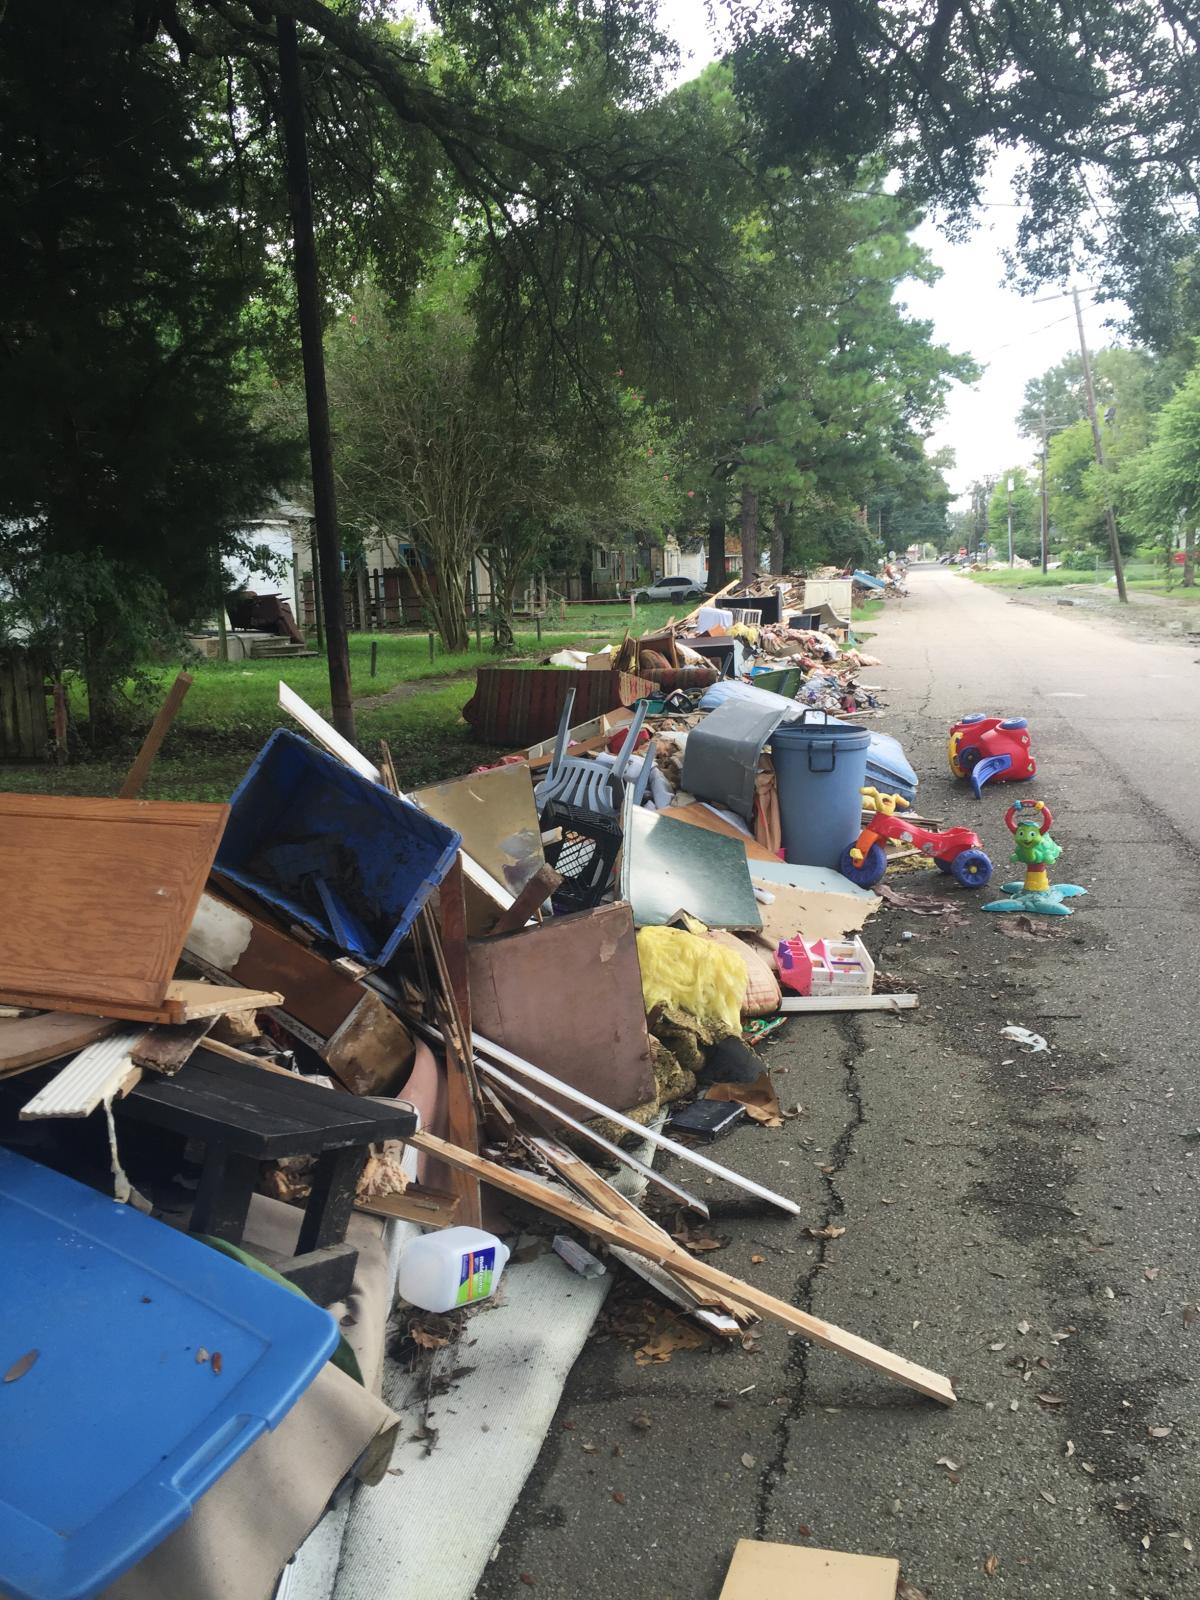 Flood-damaged debris lines a street in Baton Rouge near Claiborne Elementary, which is reopened and hosting students displaced from a nearby school.